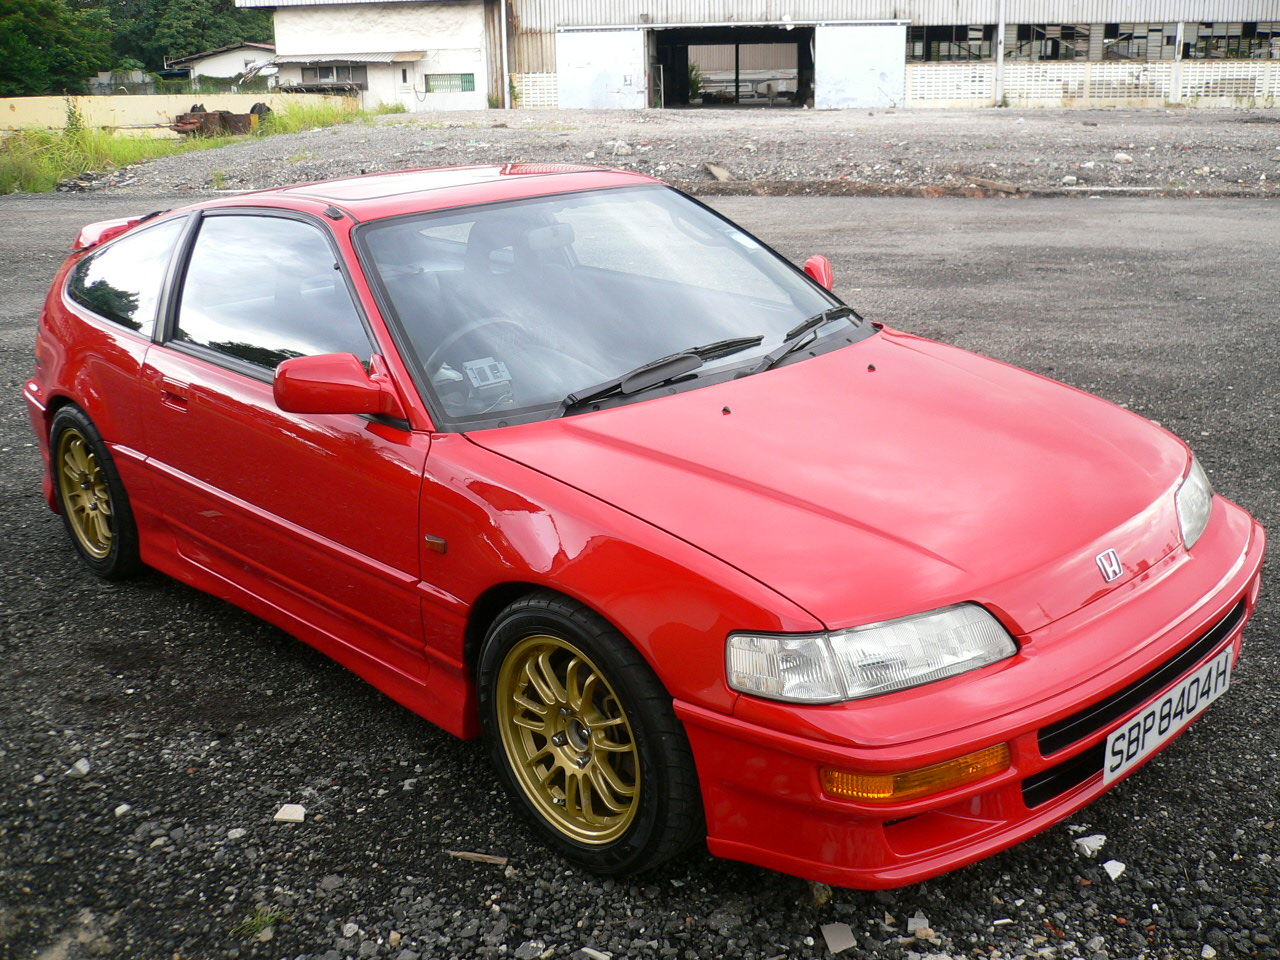 1990 honda civic crx information and photos zombiedrive. Black Bedroom Furniture Sets. Home Design Ideas